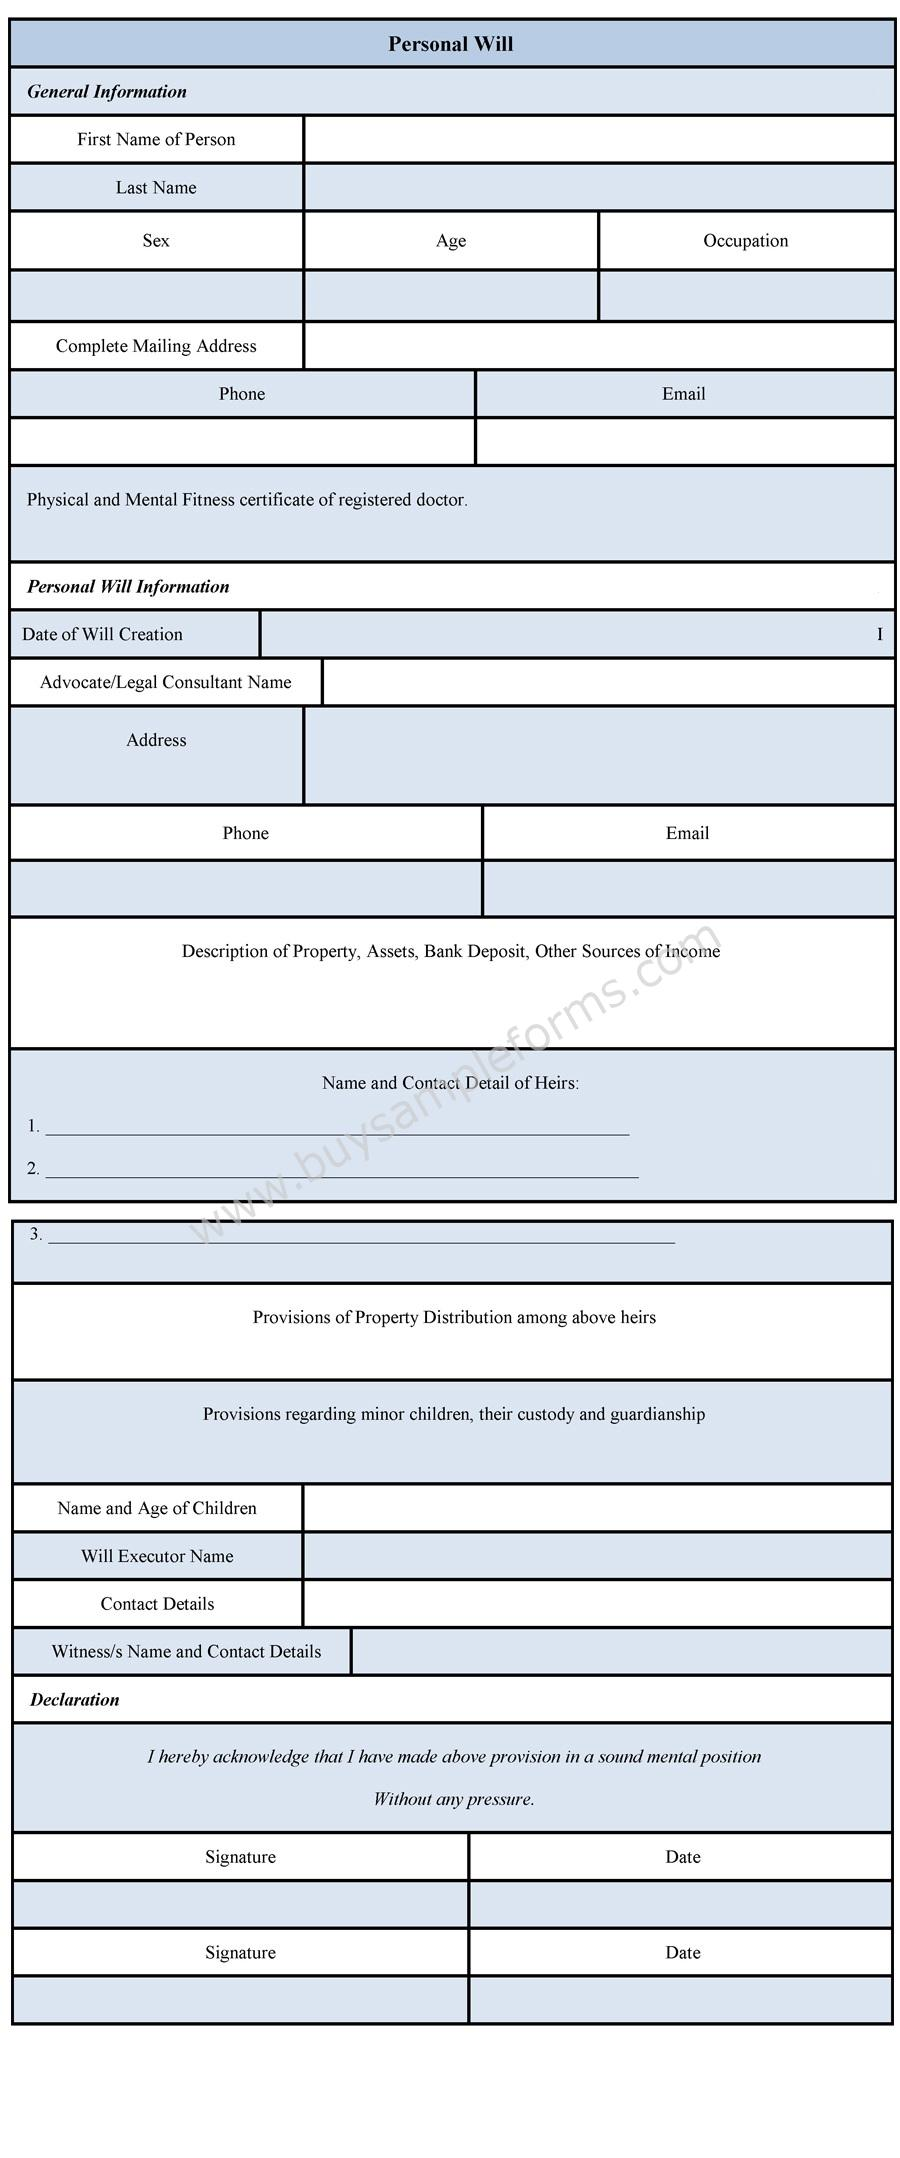 Personal Will Form | Will Template & Example | Sample Forms